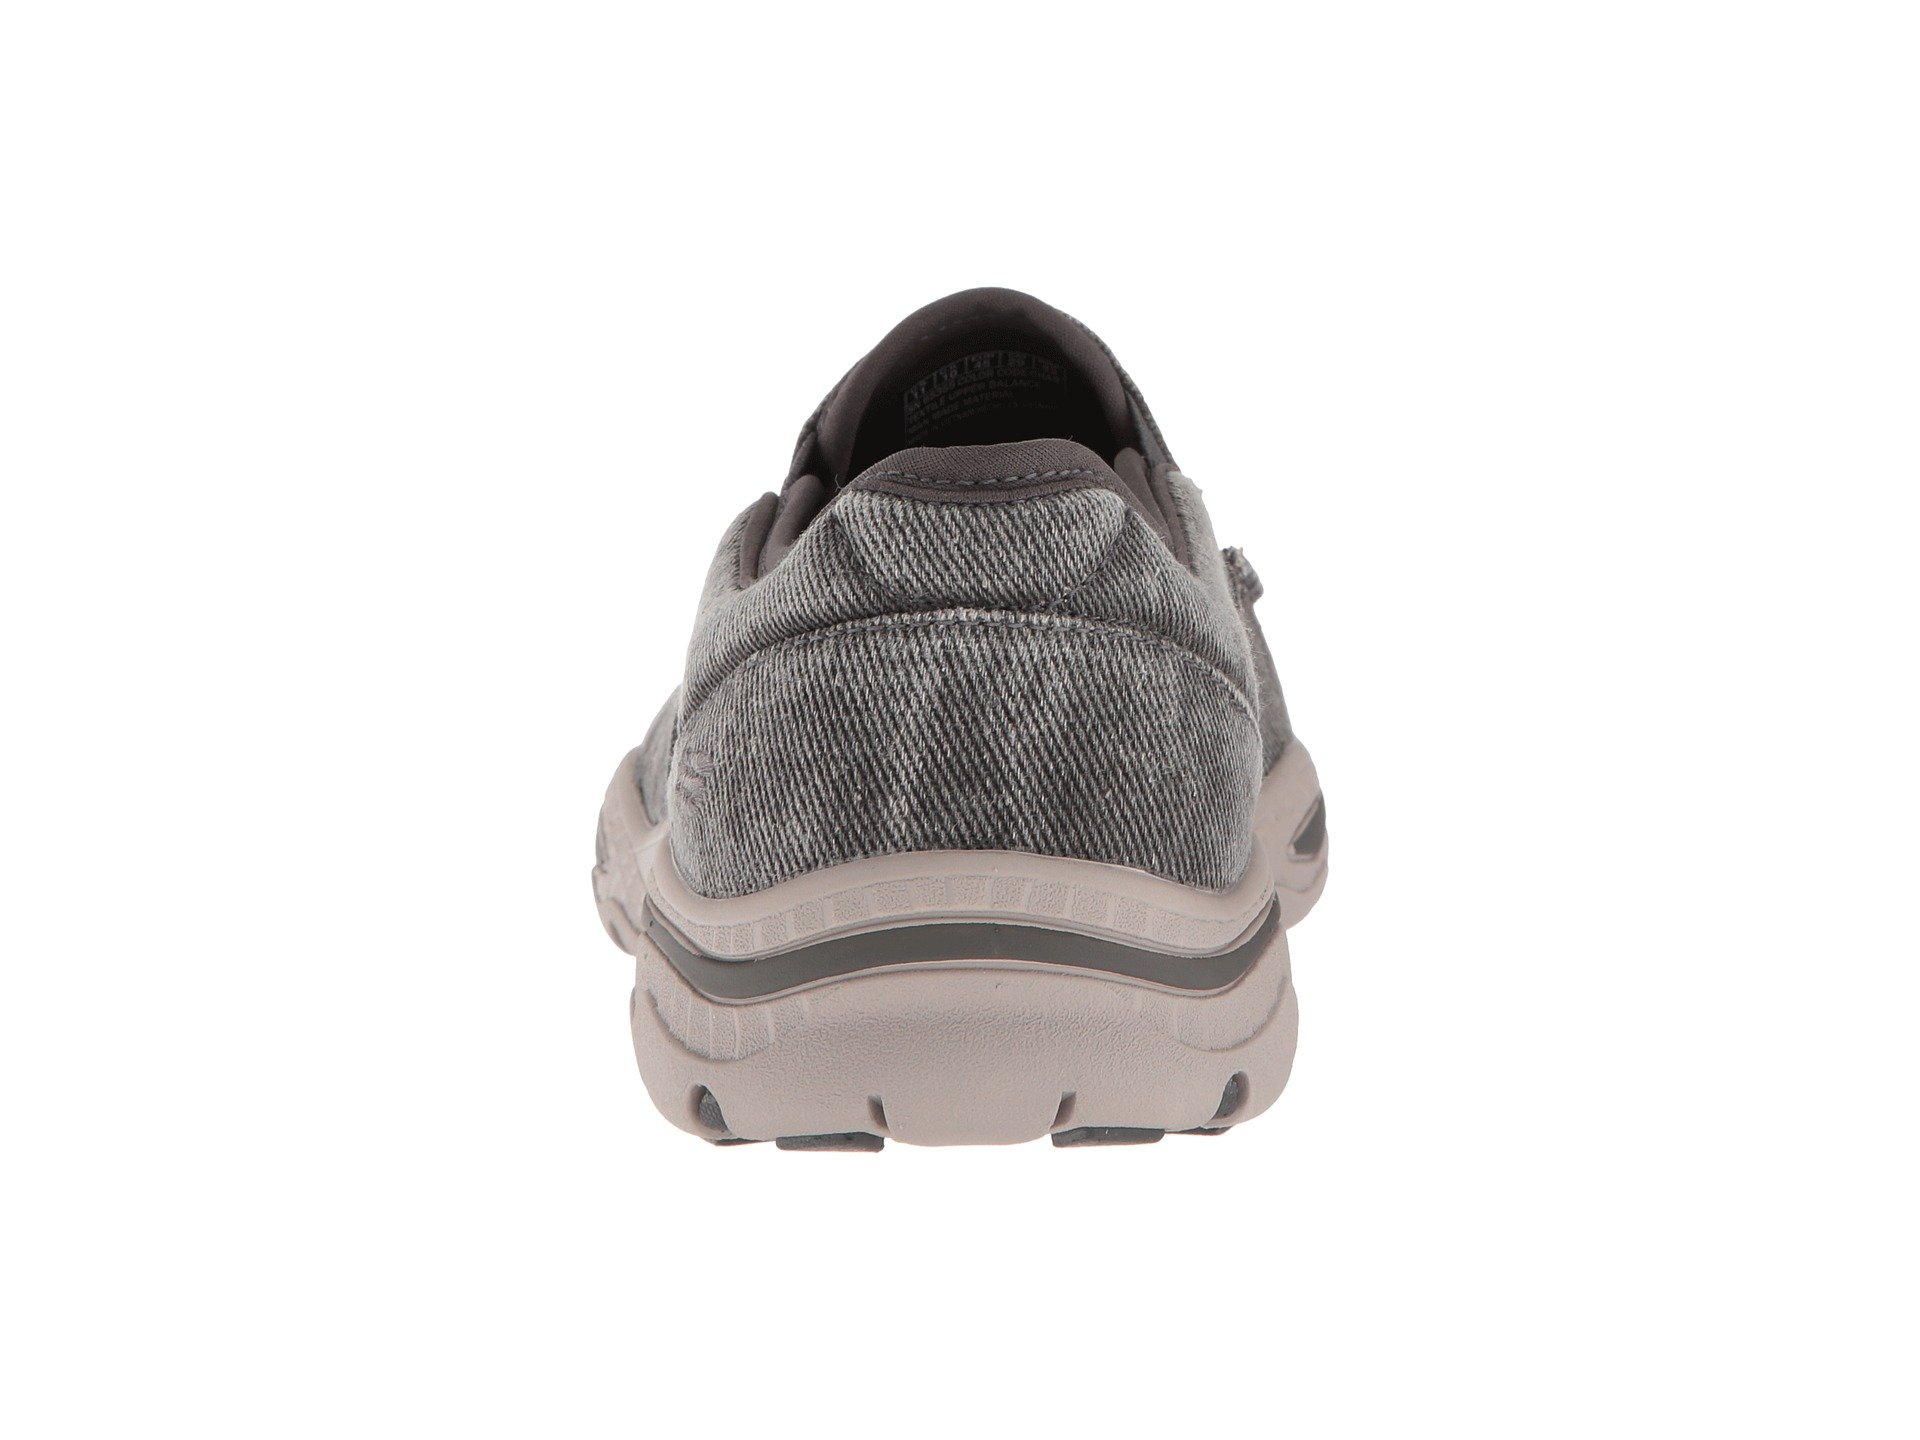 Moseco Creston Charcoal Relaxed Fit Skechers yWnTBfcT